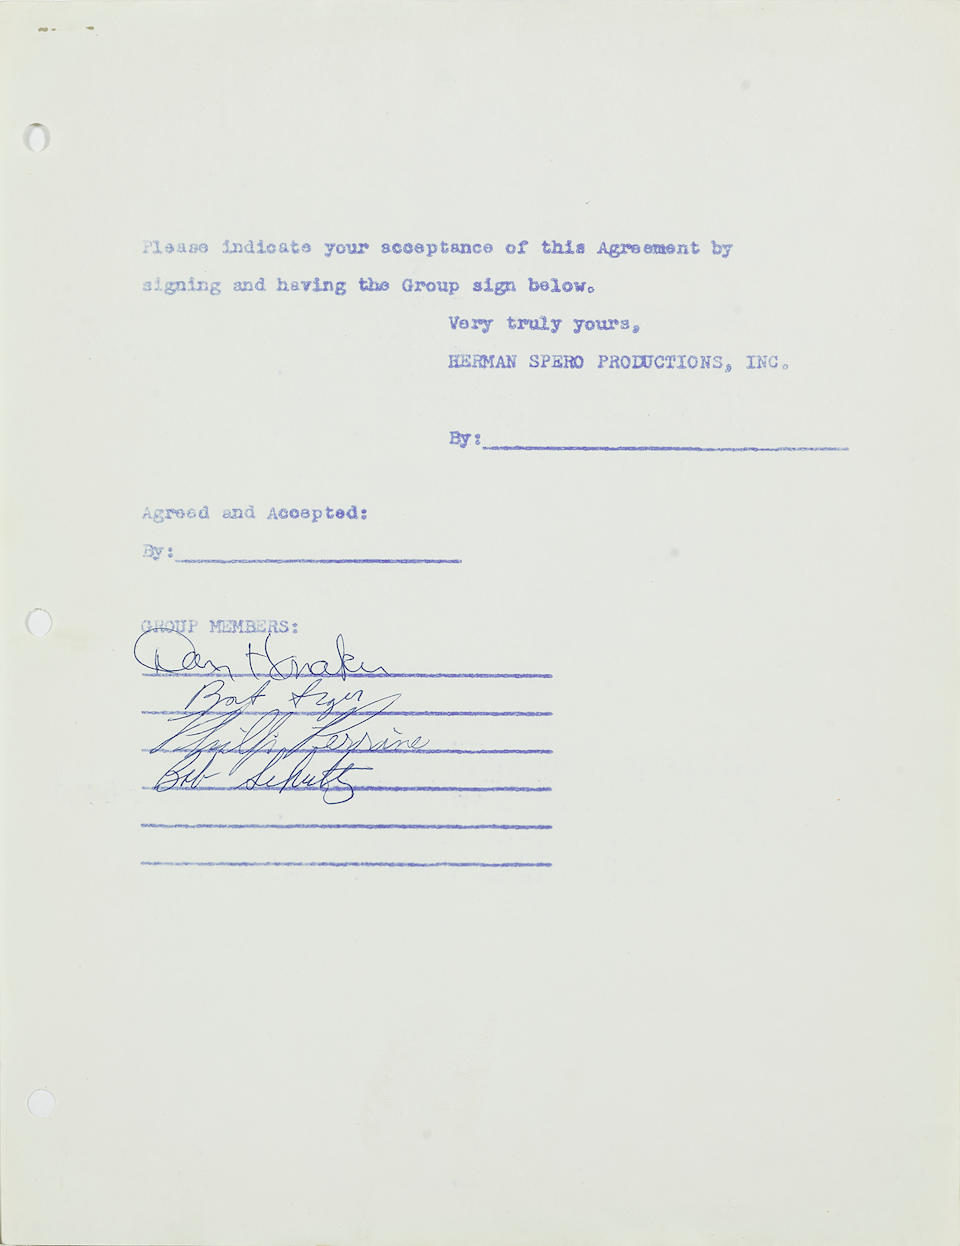 A signed Bob Seger System contract